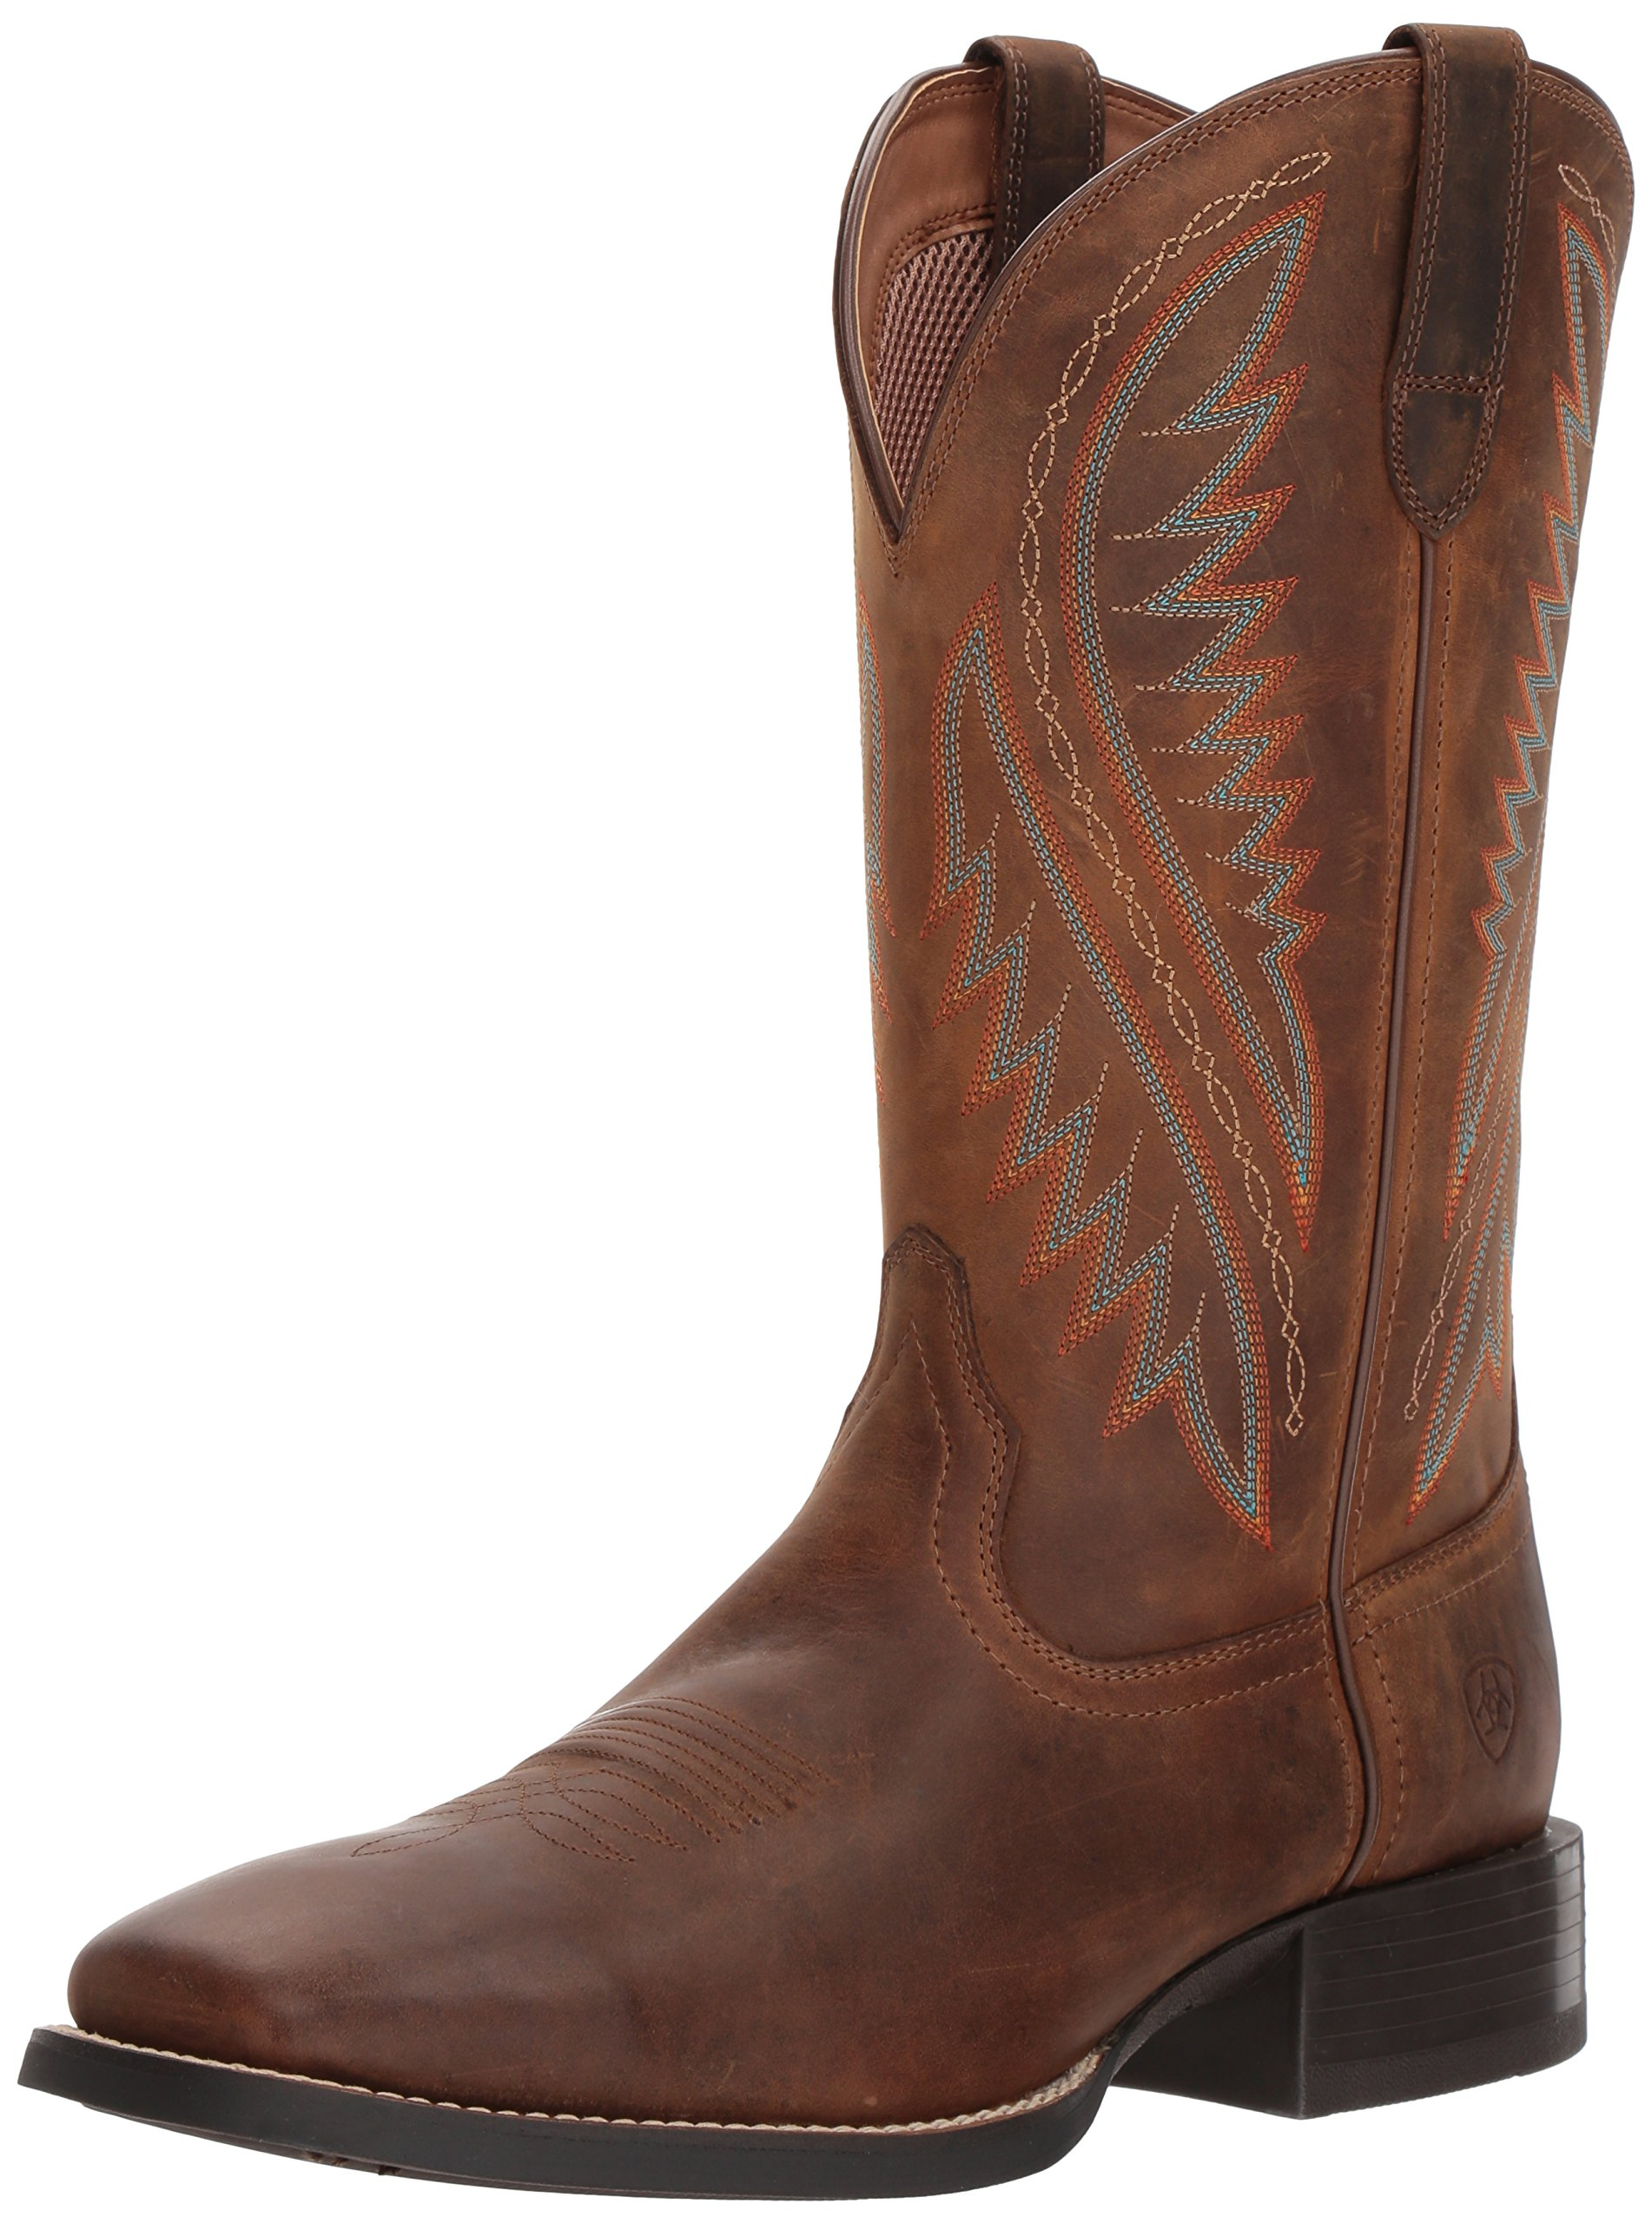 ARIAT Men's Sport Stonewall Western Boot, Distressed Brown, 10 E US by ARIAT